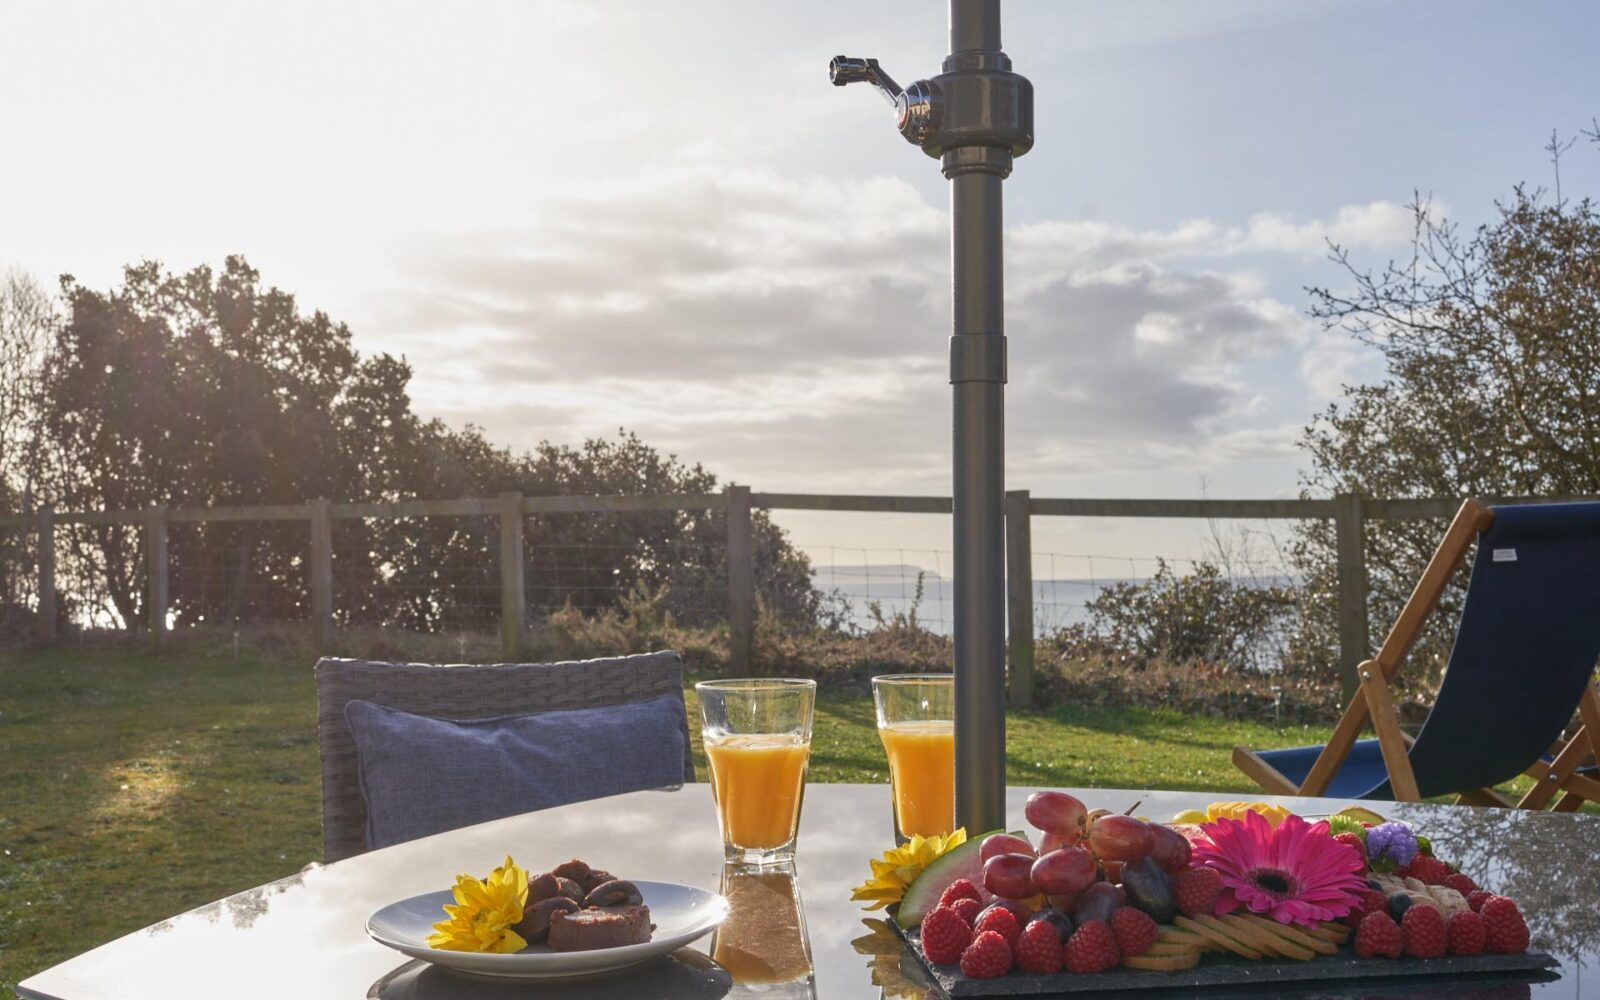 Outdoor table and chairs area with a breakfast spread waiting for guests